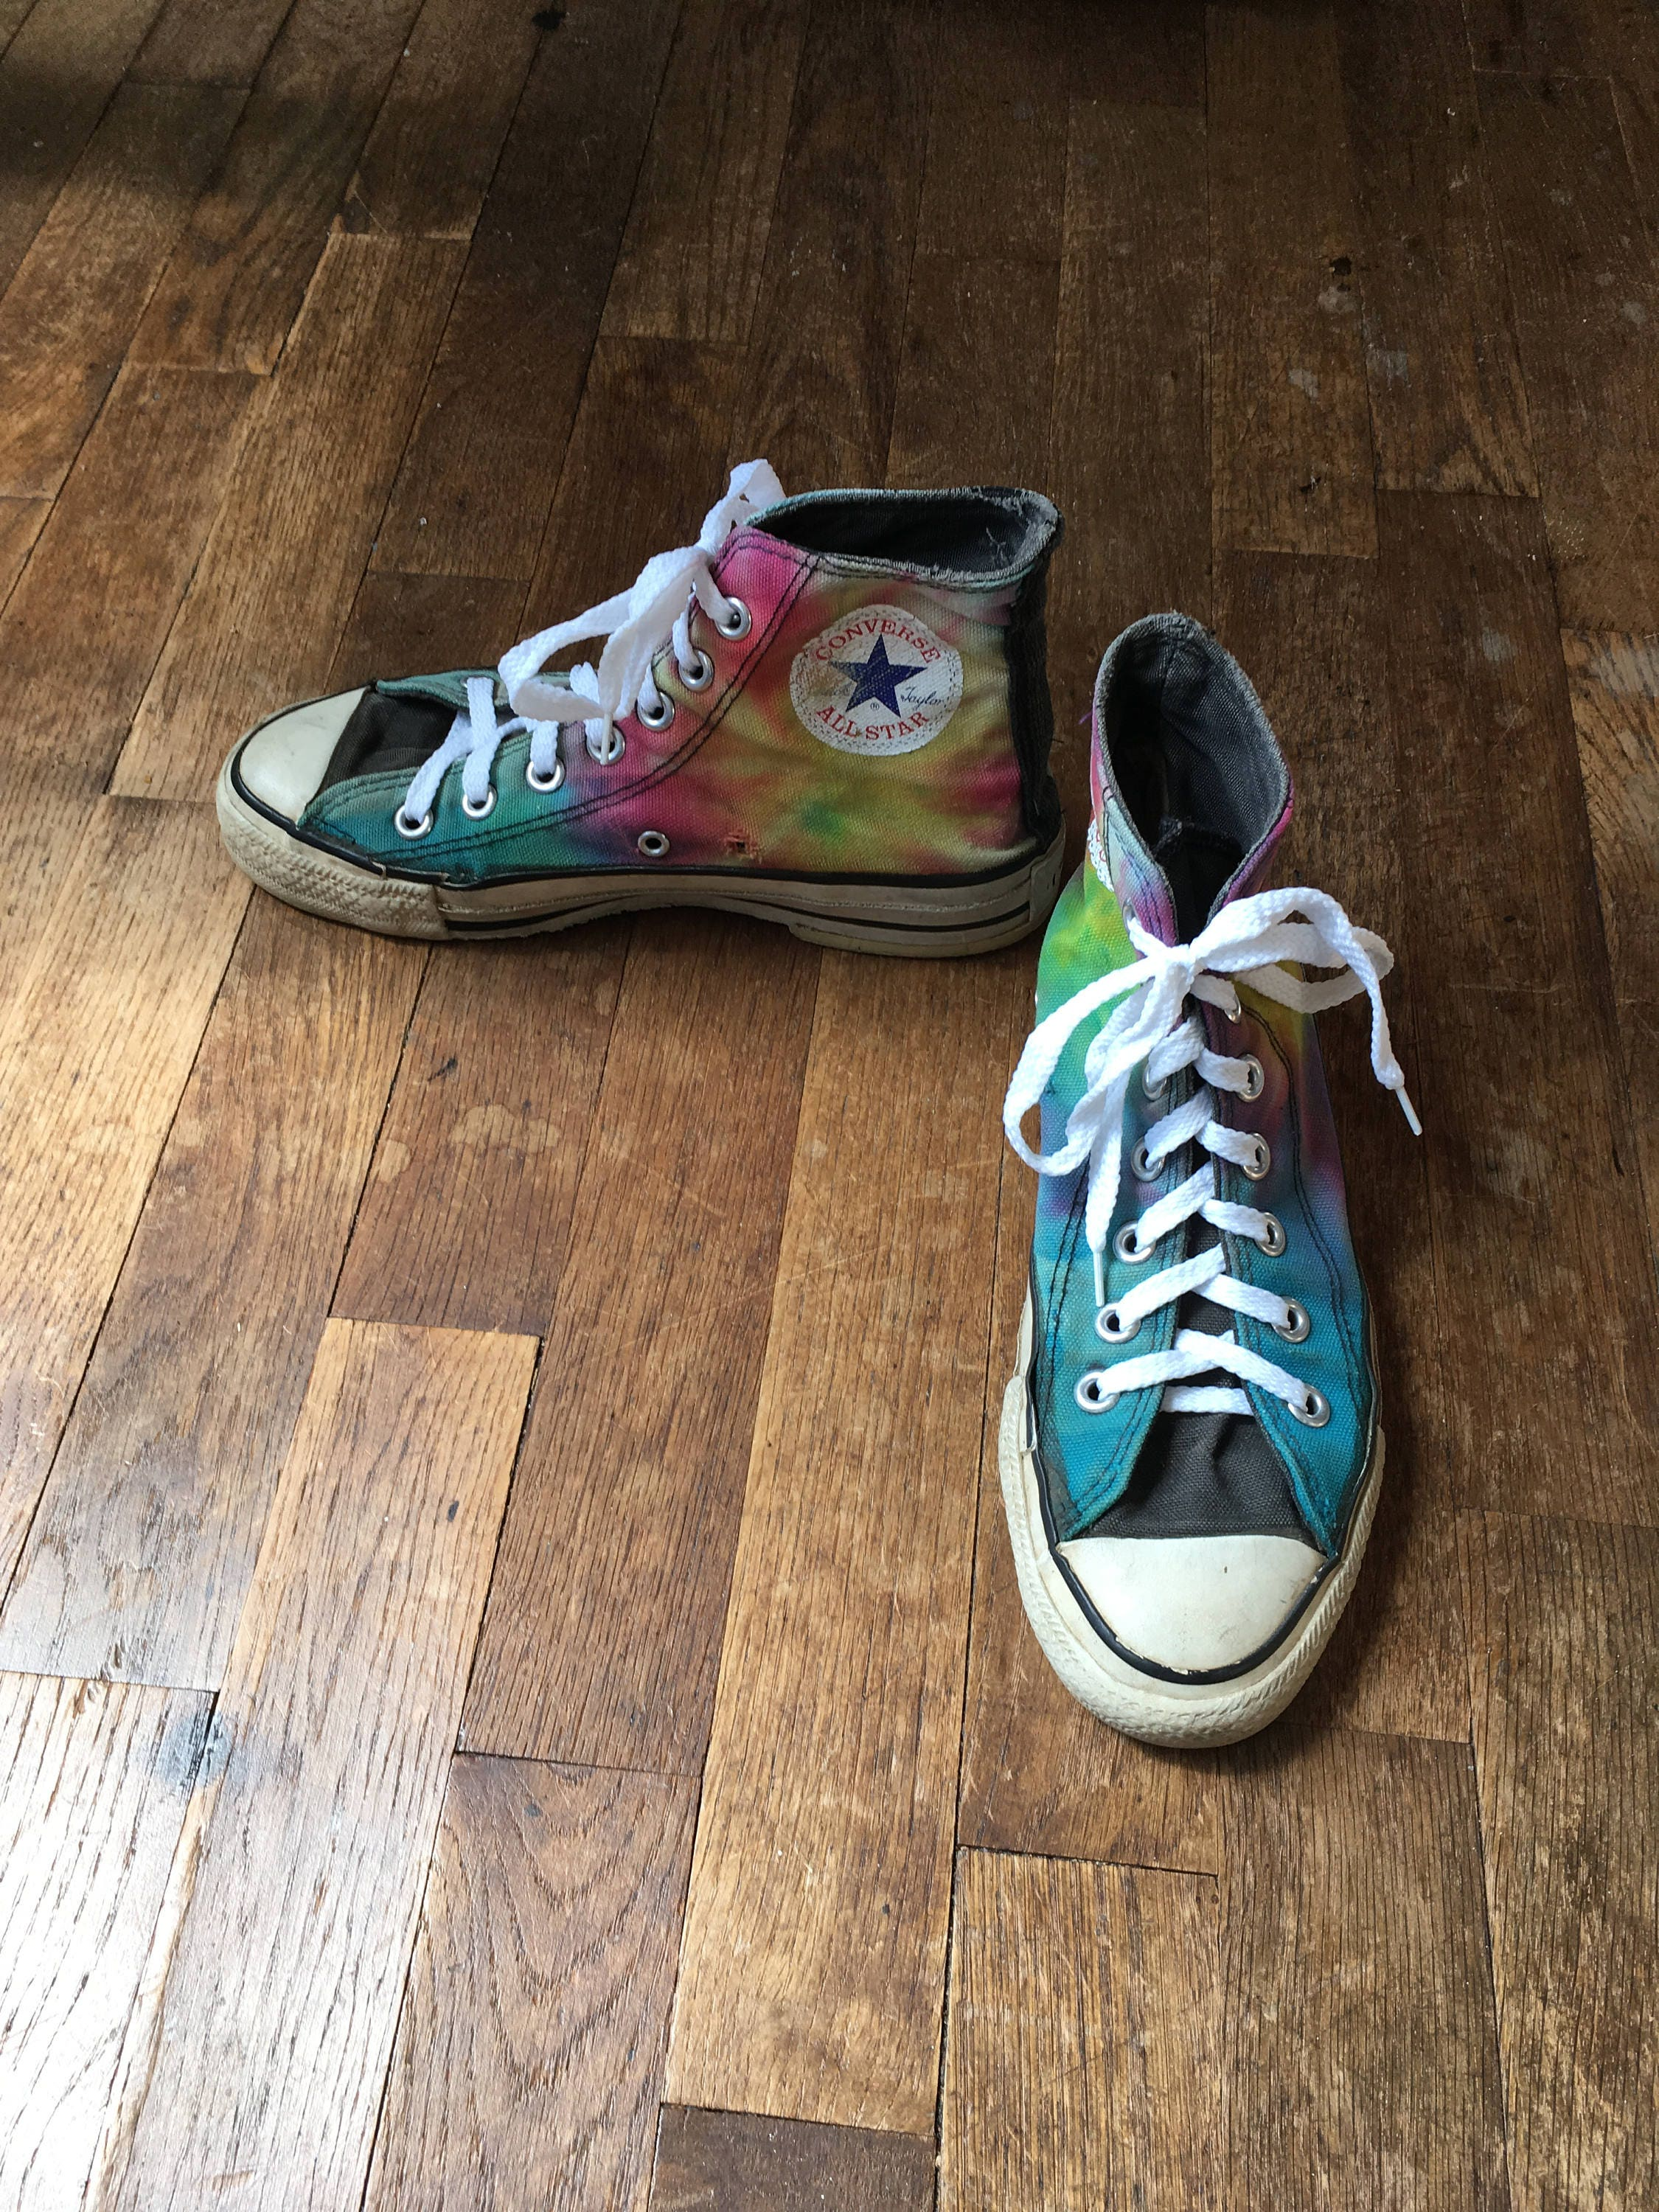 4b65e0a93d5db0 Vintage 80s converse tie dye hi tops made in usa all star